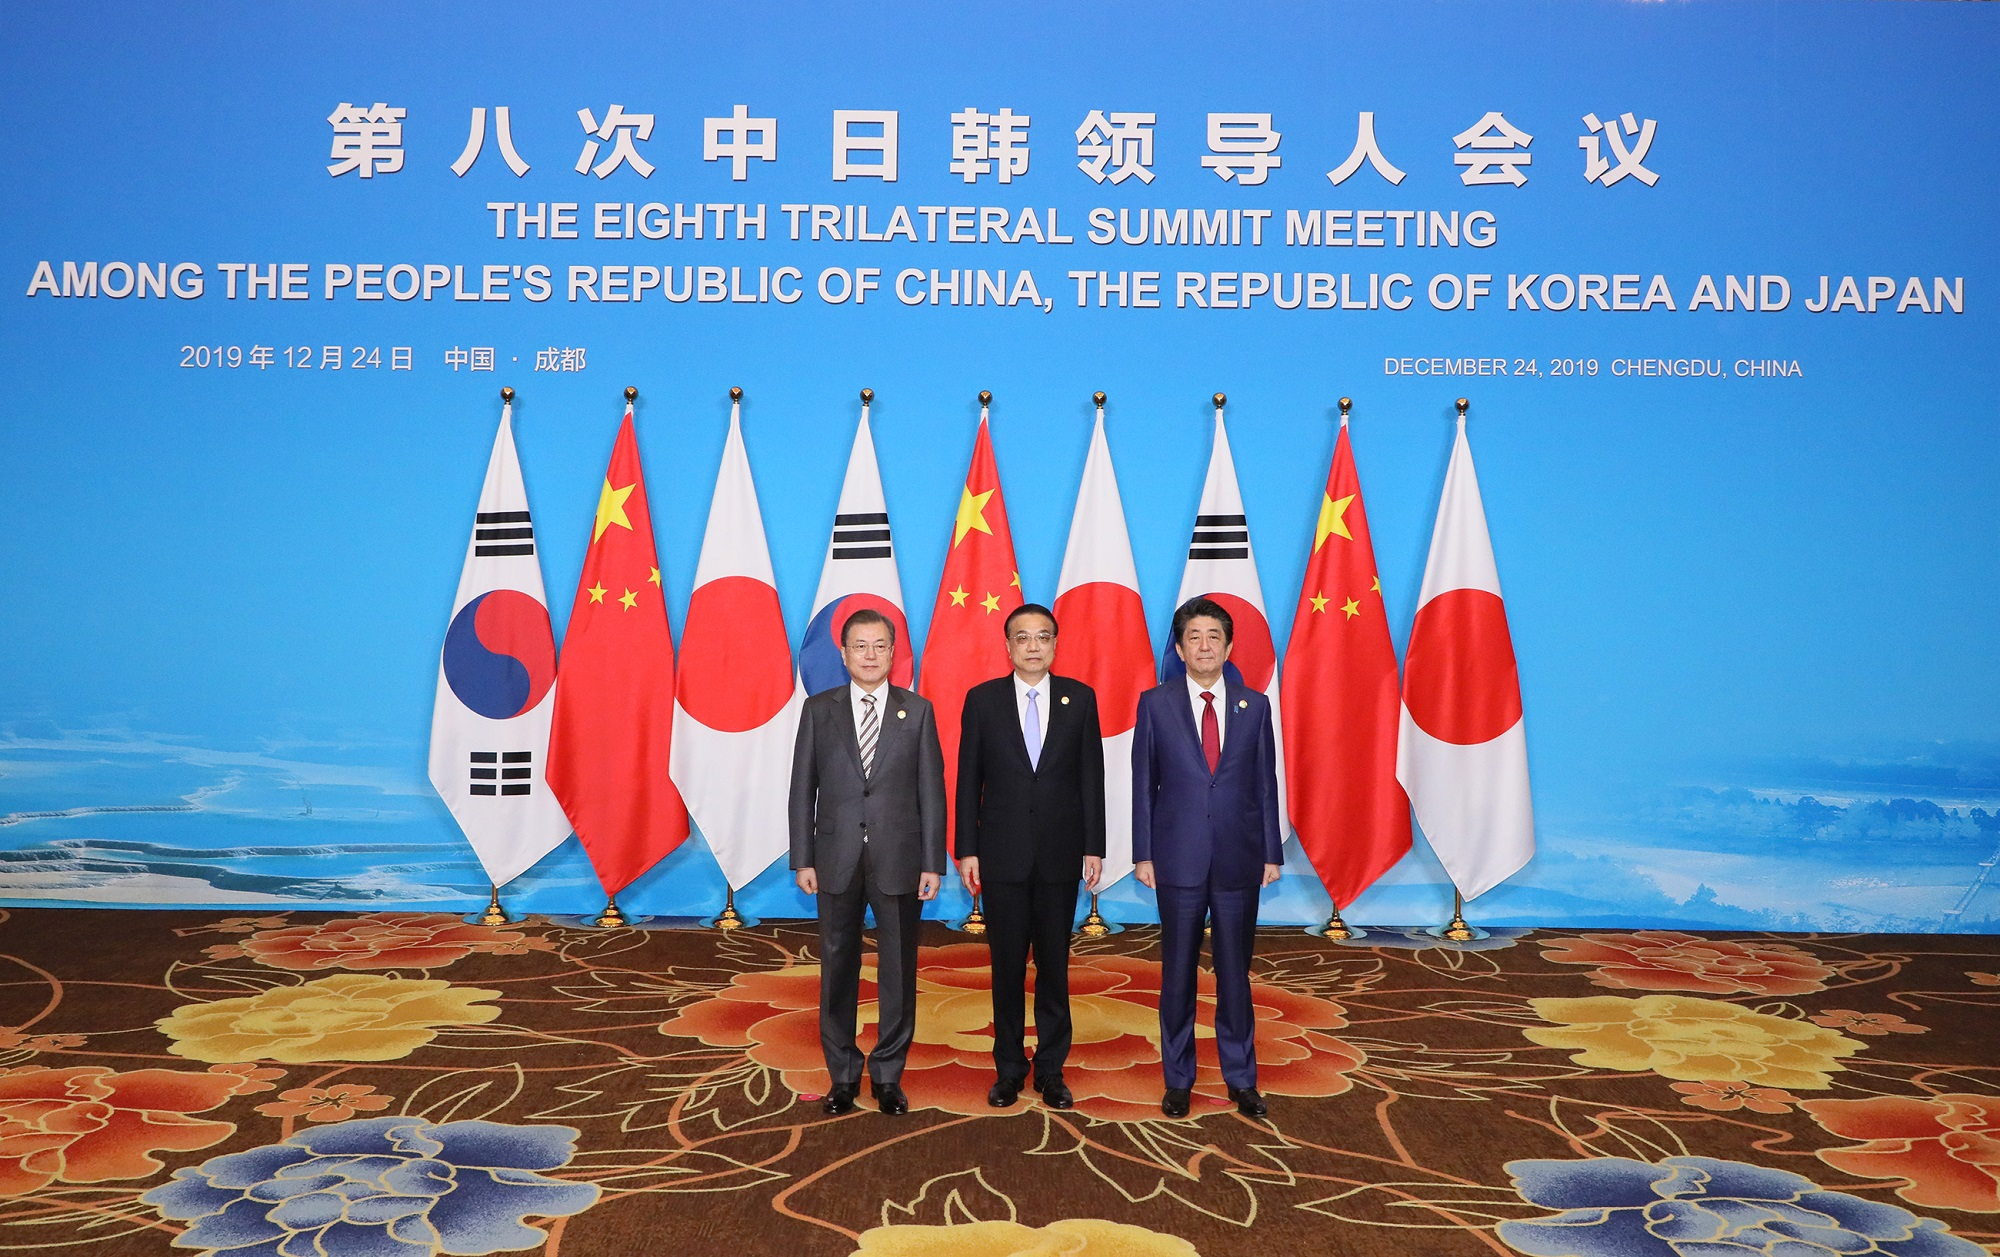 Photograph of the commemorative photograph session at the Japan-China-ROK Trilateral Summit Meeting (2)